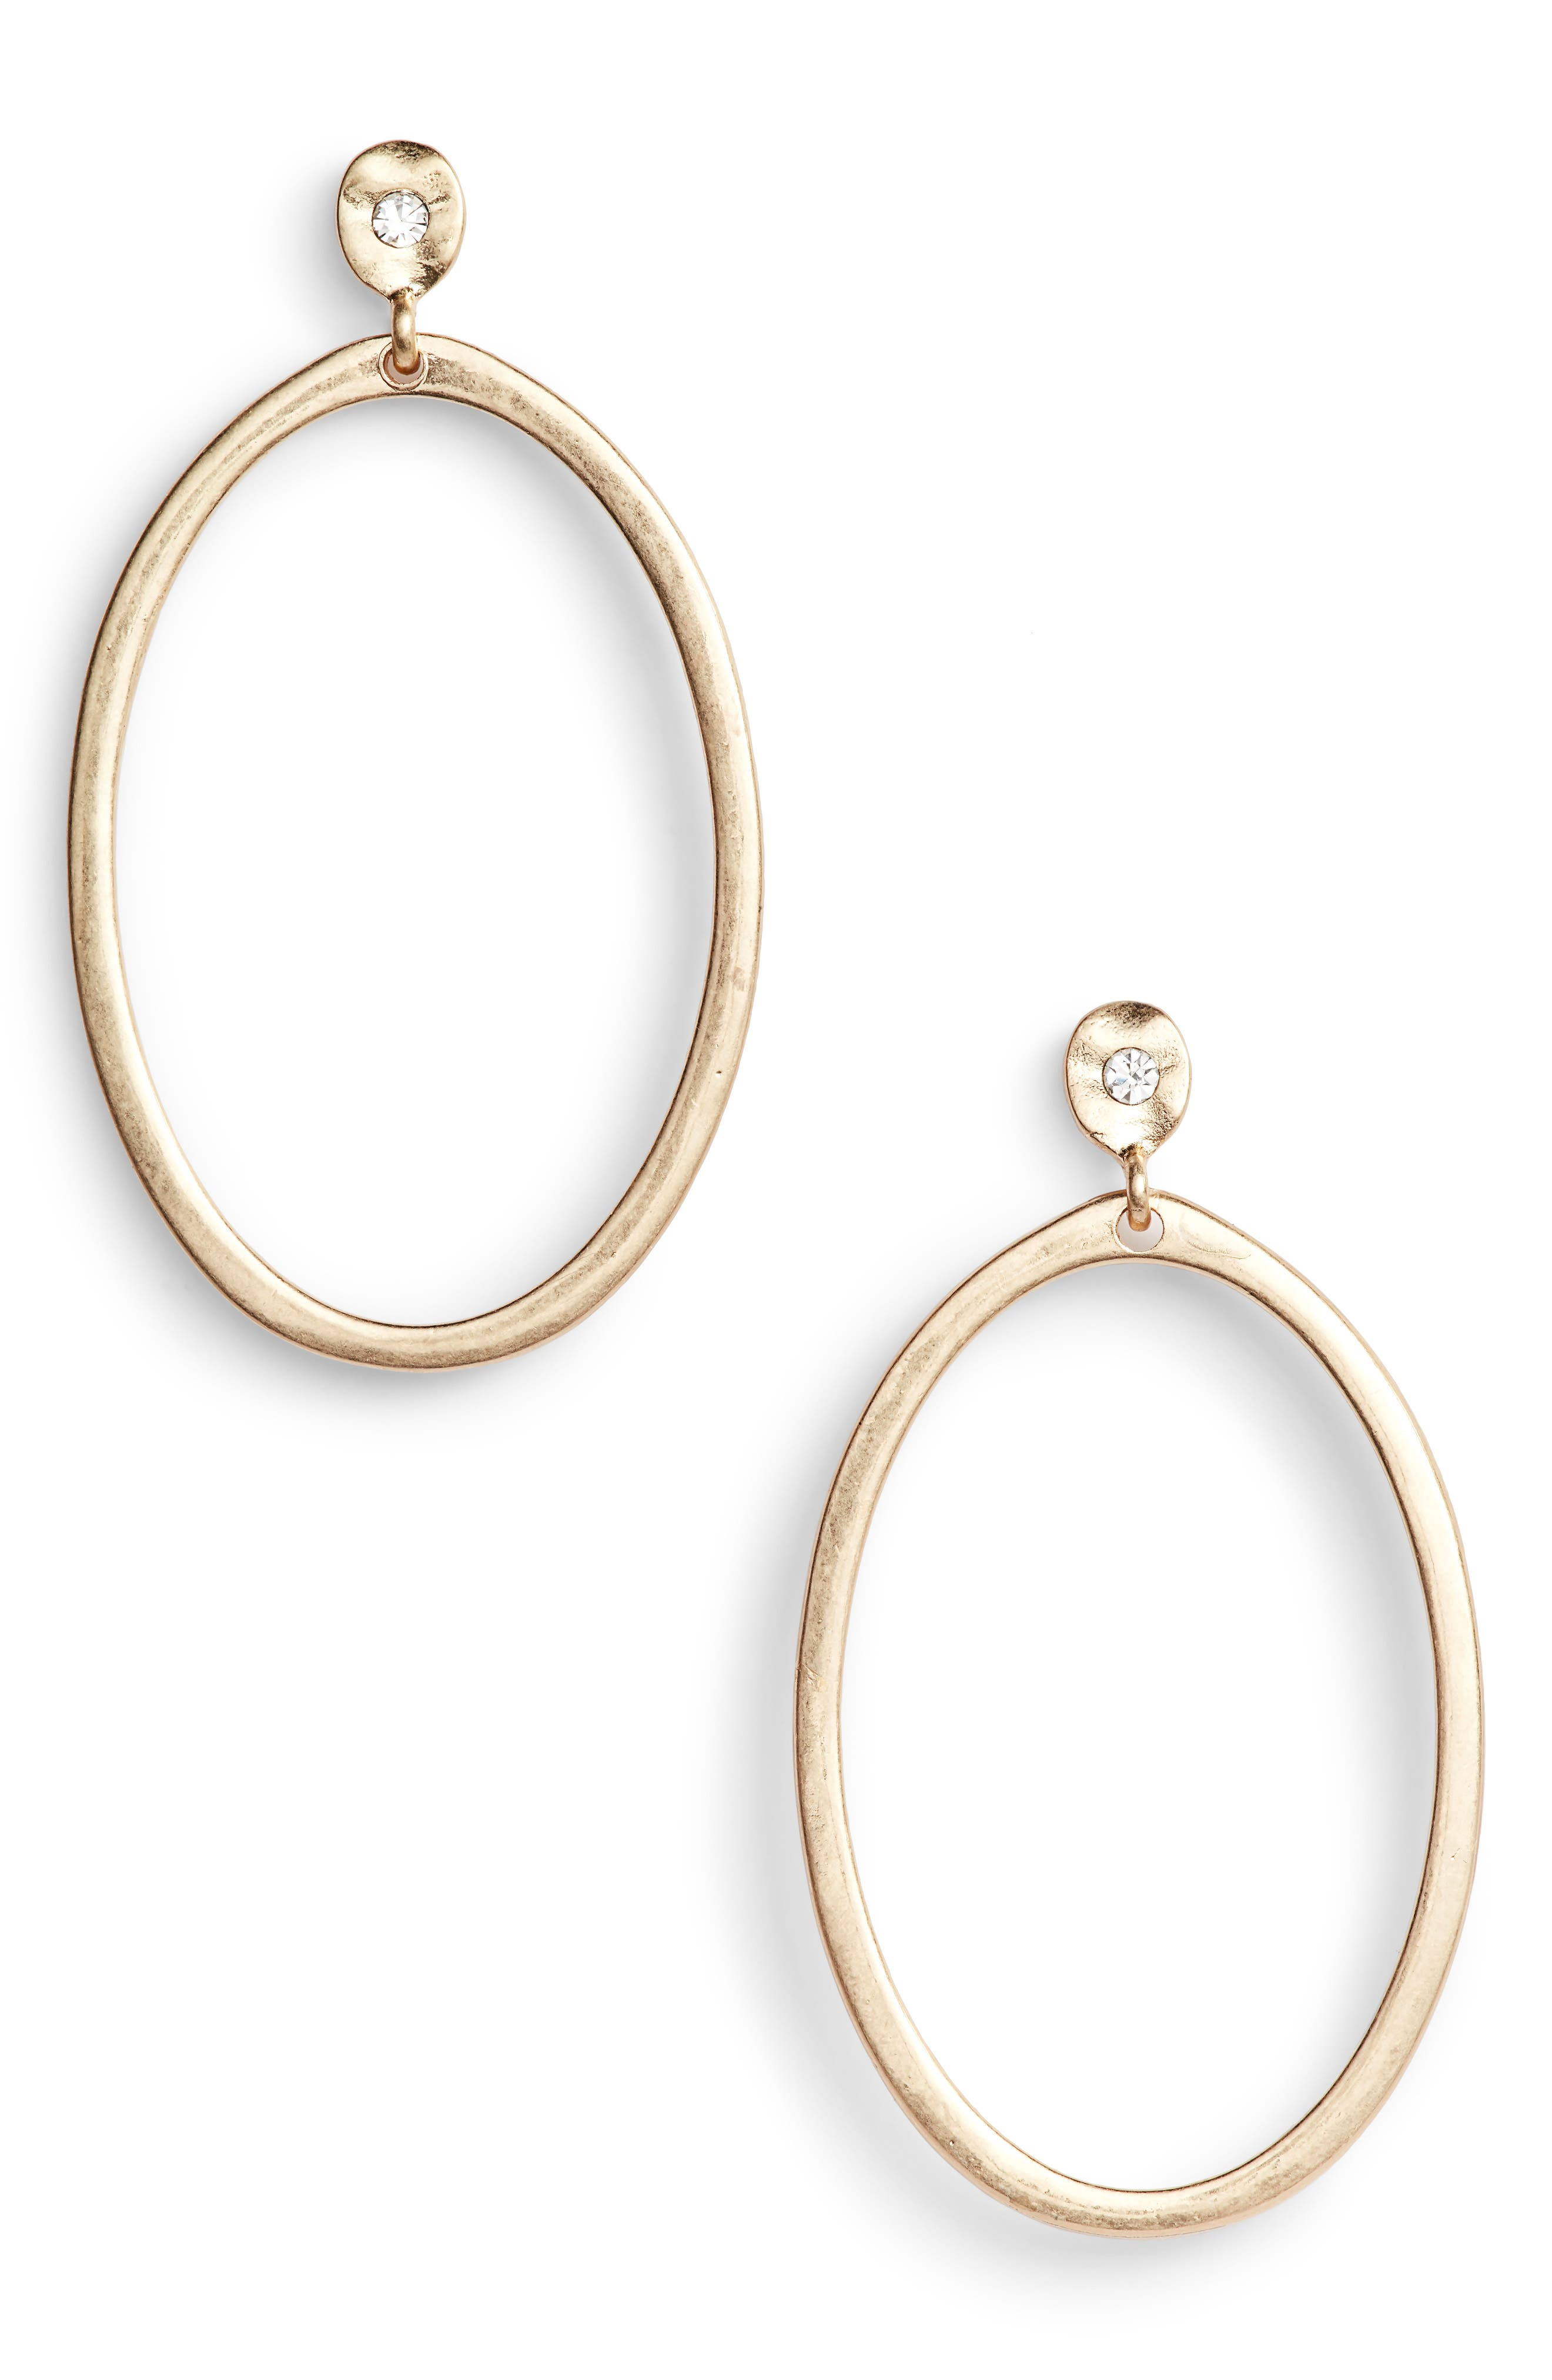 Organic Oval Hoop Earrings,                         Main,                         color, Clear- Gold